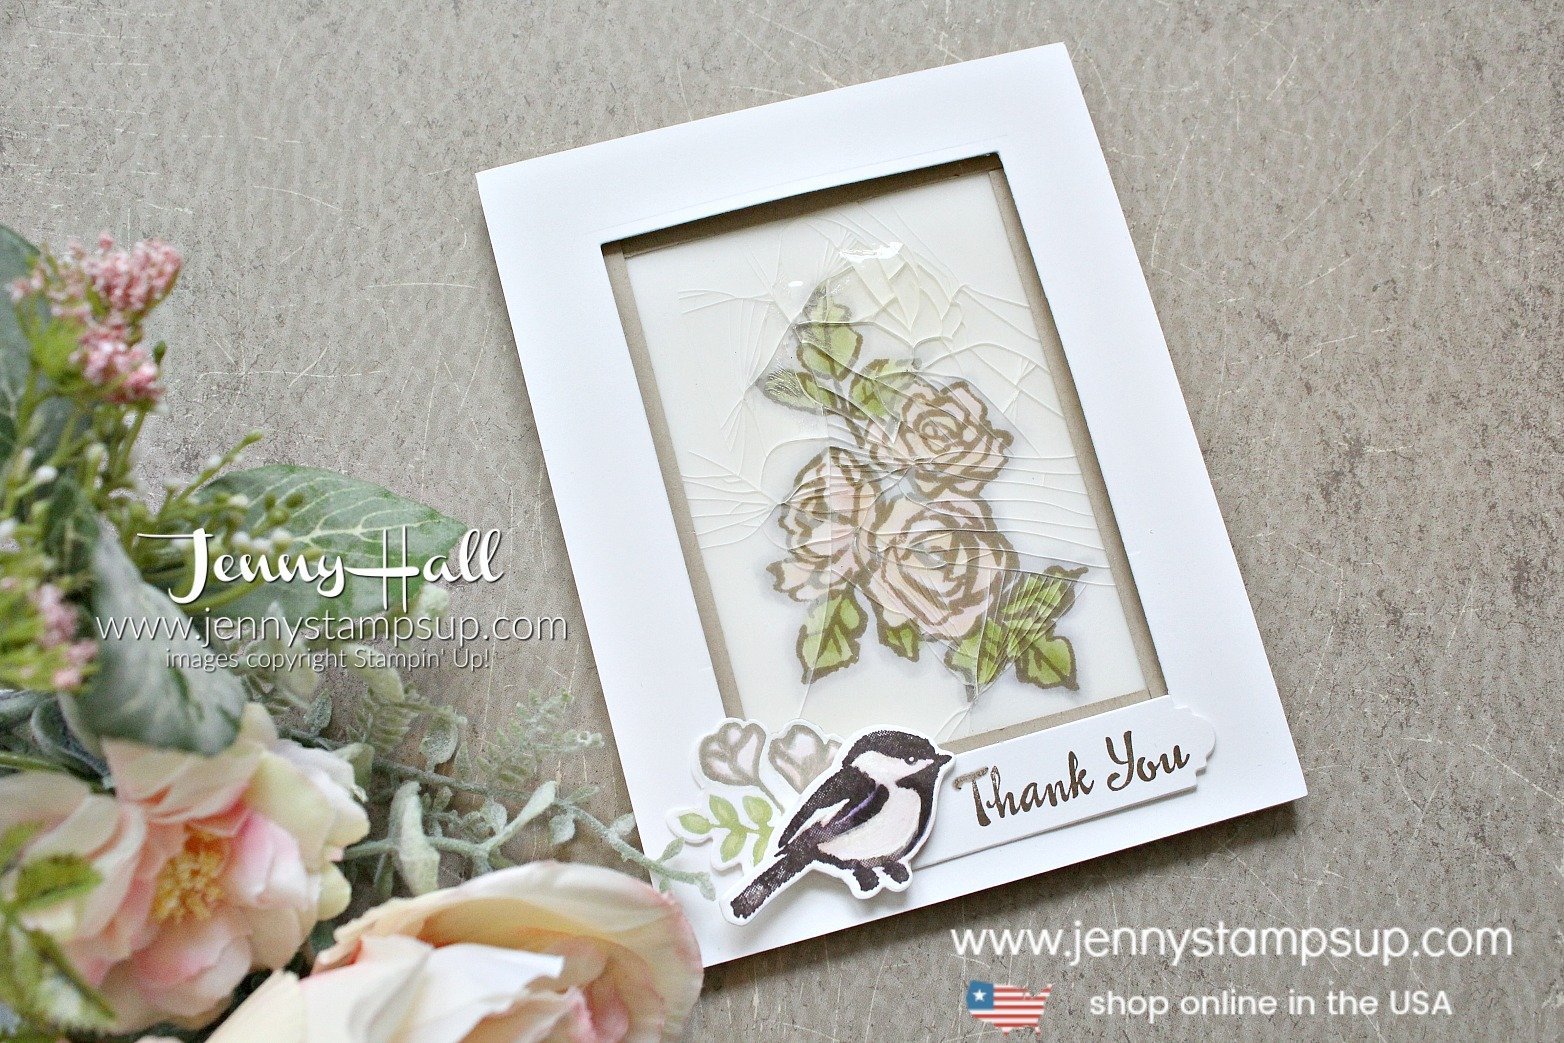 Cracked glass technique card with Petal Palette Bundle created by Jenny Hall at www.jennystampsup.com for #cardmaking #videotutorial #youtuber #cardmakingvideos #cardmakingtechnique #papercraft #cardmakingdesign #petalpalette #vintage #vintagecard #crackedglass #tiffanystyle #shabbychic #shabbychicdesign #cascards #jennyhalldesign #jennystampsup #jennyhallstampinup #crafts #watercolorpainting #stamping #stampinup #lifestyle #creativelife